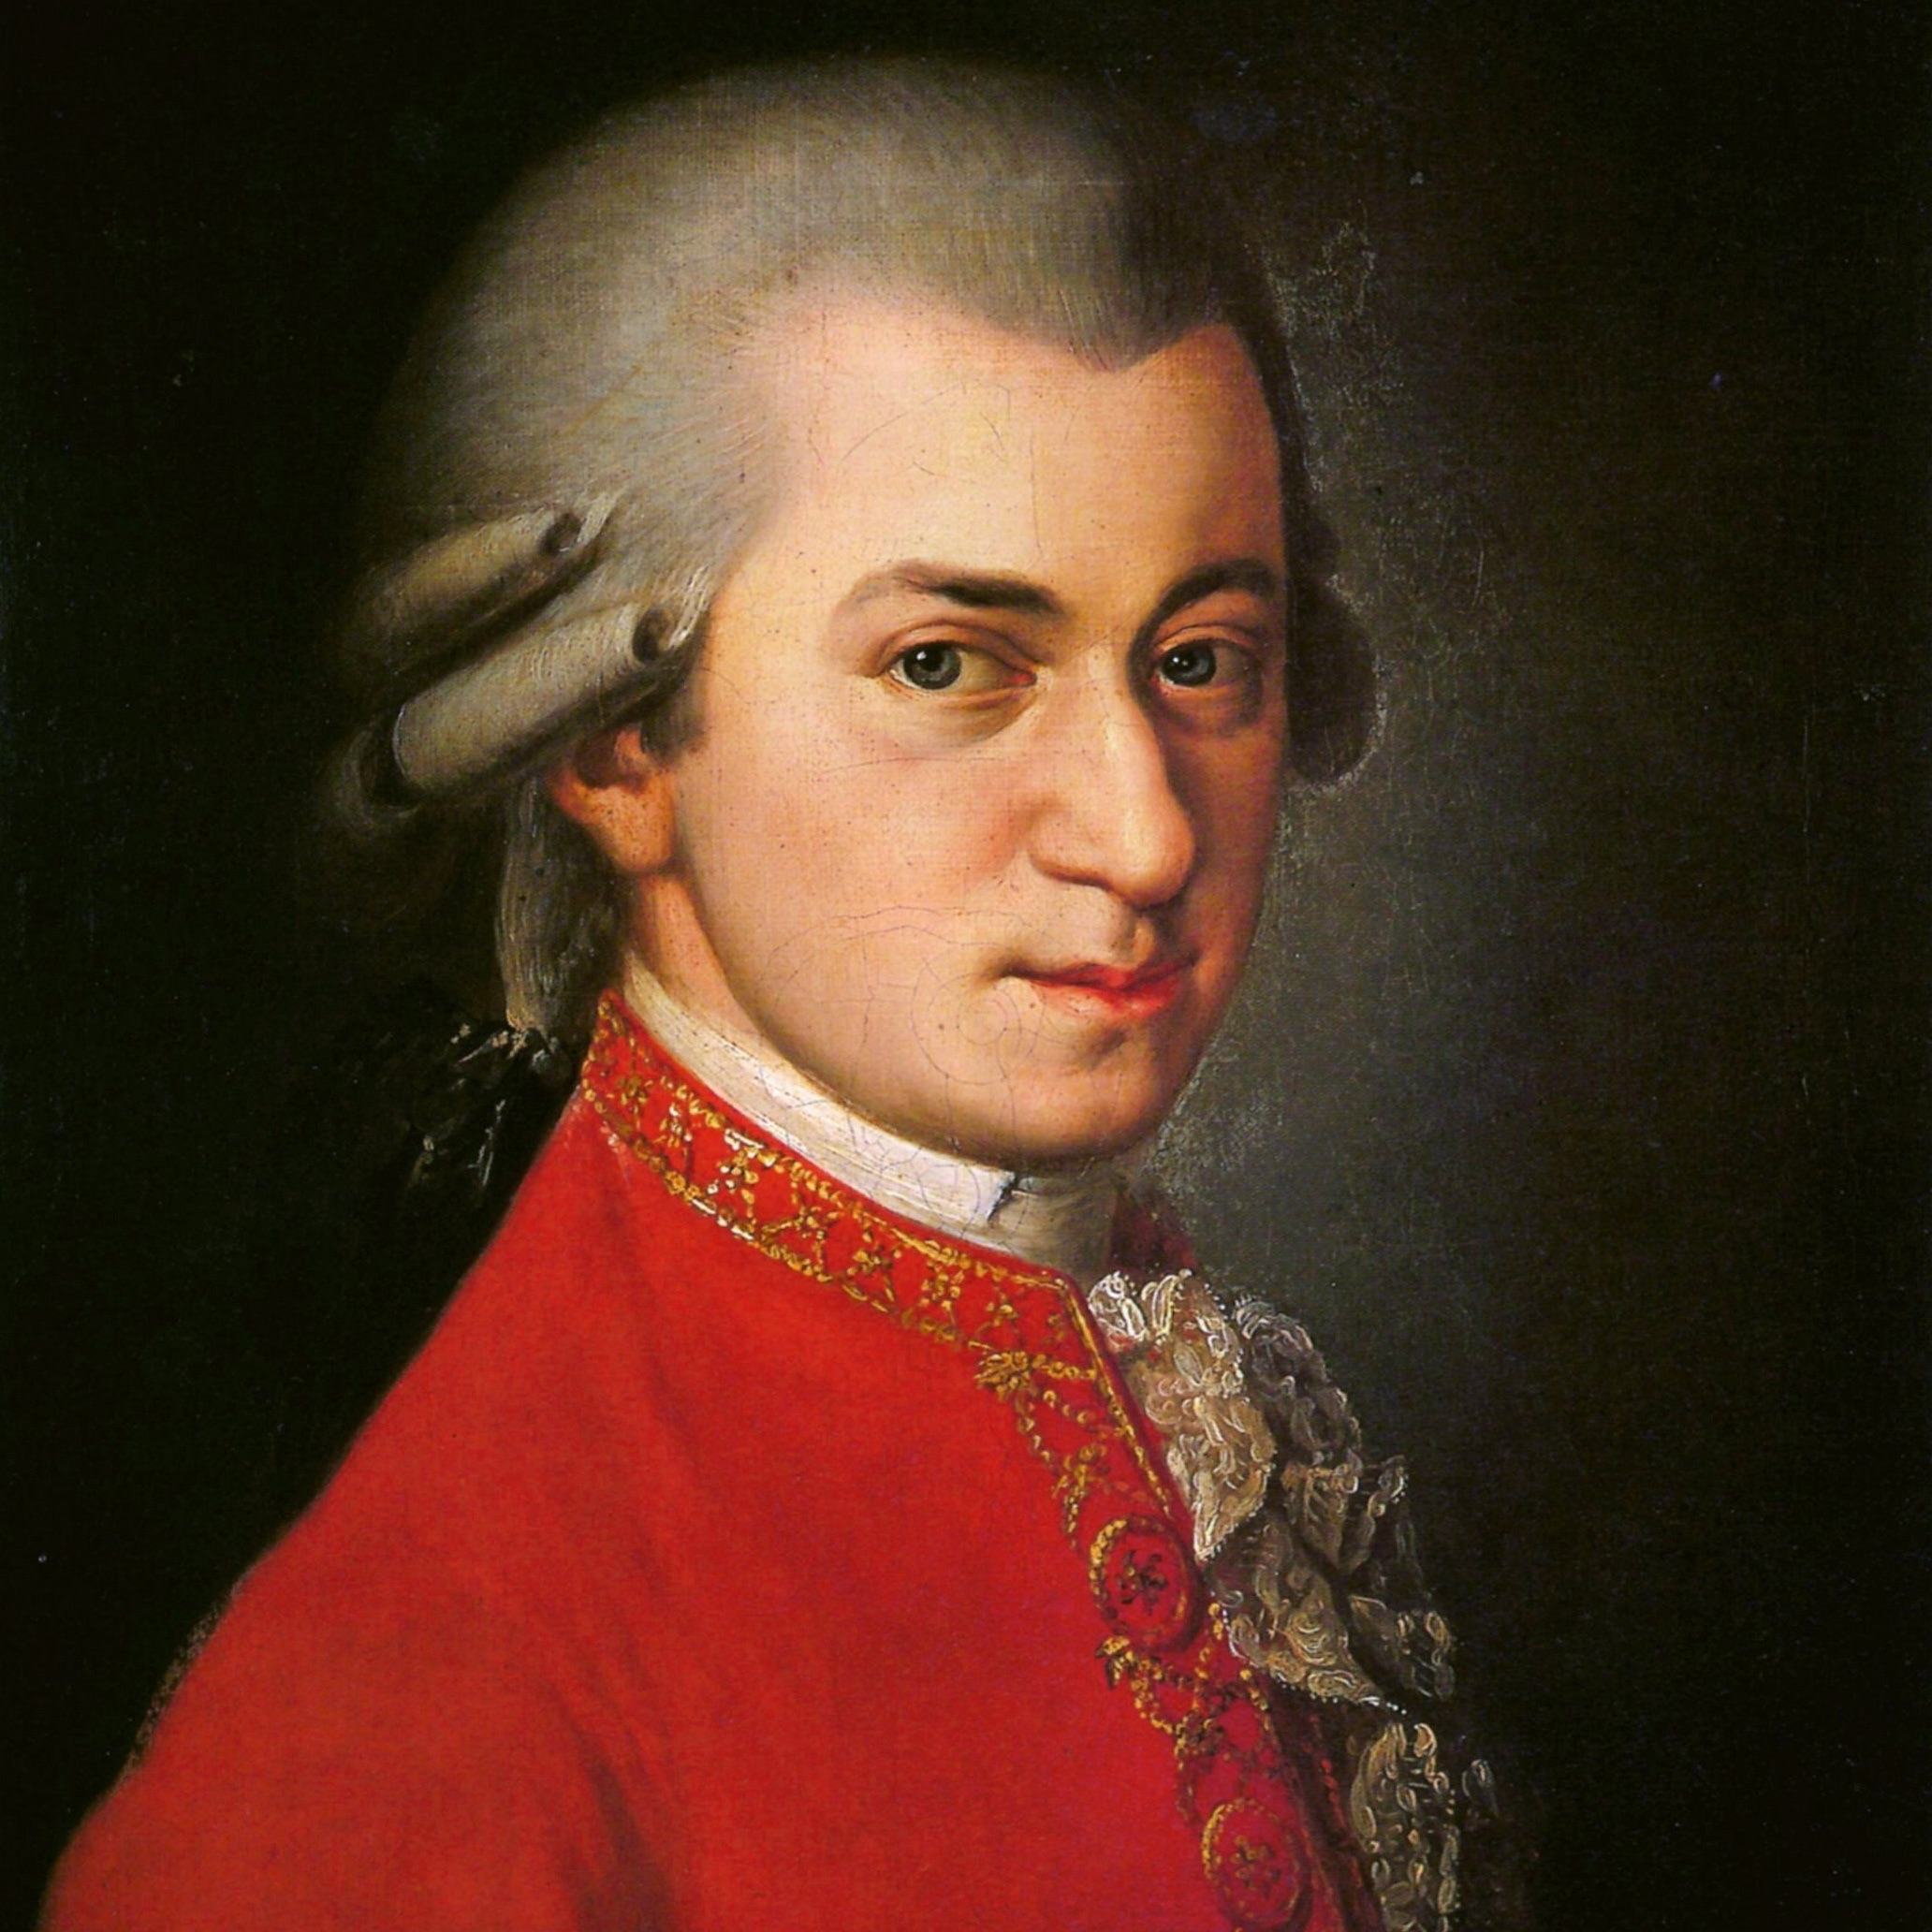 the biography of wolfgang amadeus mozart the musical prodigy Learn these 20 amazing facts about mozart to better understand his music and  develop a deeper appreciation for his musical genius  wolfgang amadeus  mozart these facts are located in the resources listed on mozart's.